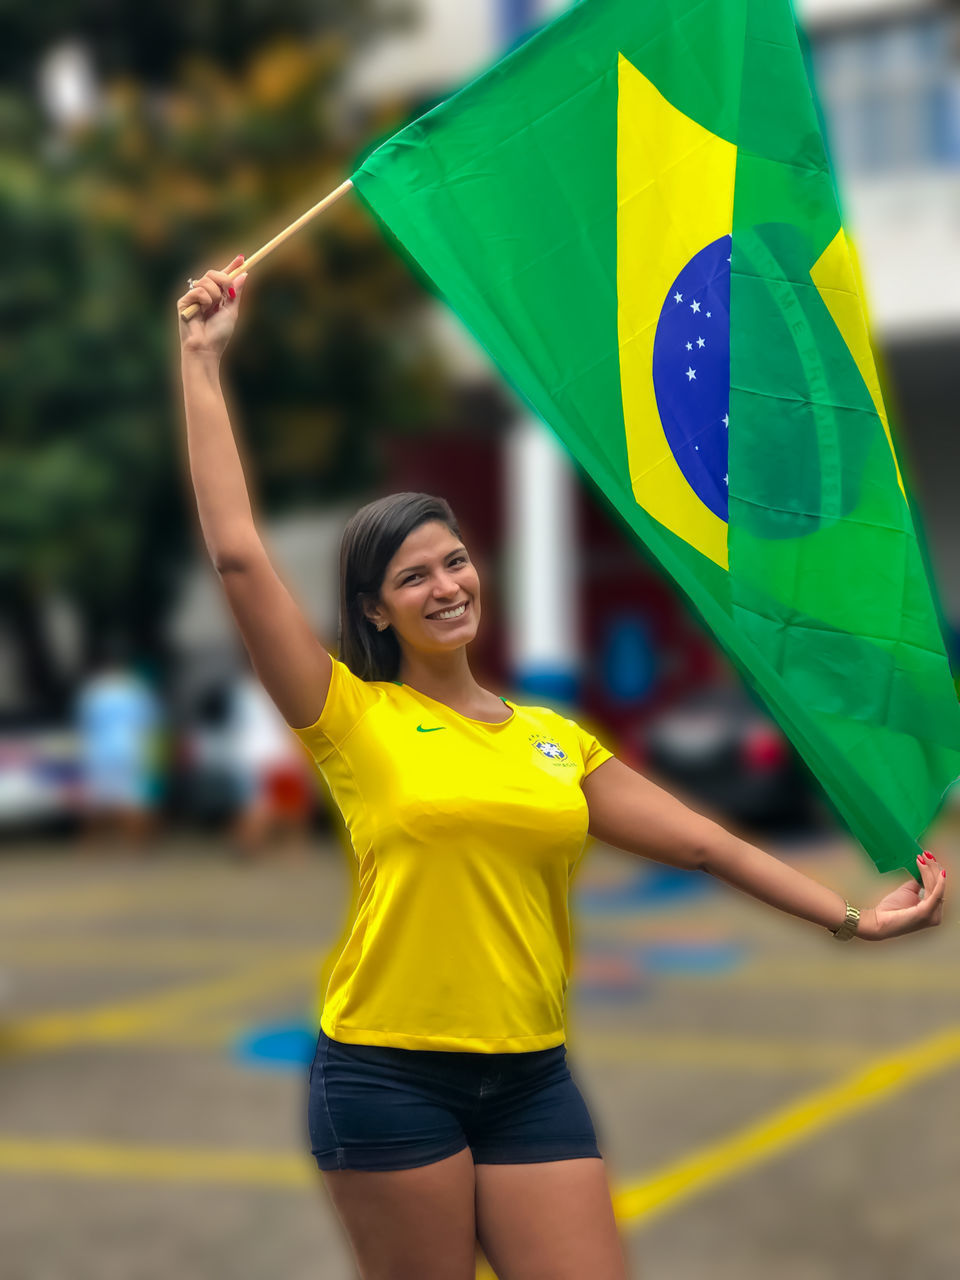 yellow, happiness, women, real people, lifestyles, emotion, focus on foreground, one person, smiling, multi colored, day, adult, leisure activity, young women, young adult, holding, motion, outdoors, front view, freedom, human arm, flag